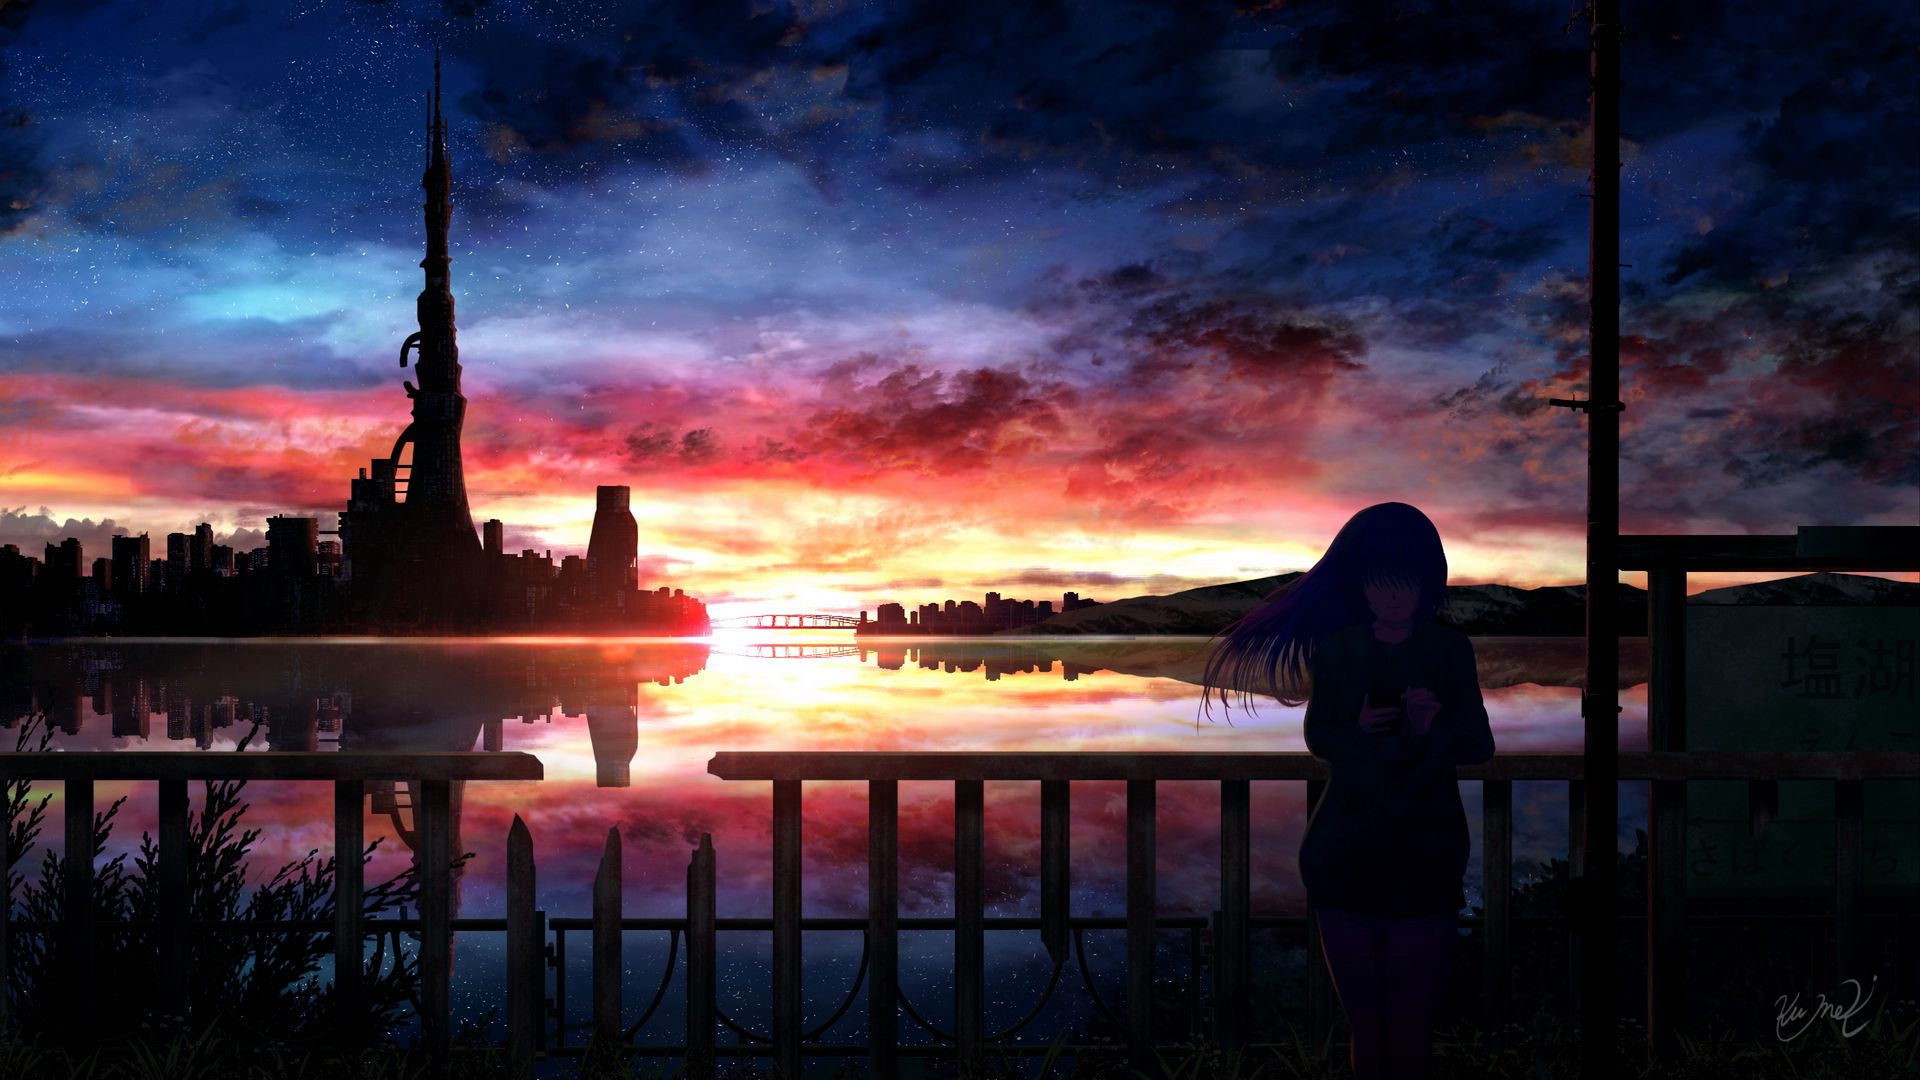 Download Wallpaper 1920x1080 Silhouette Night Starry Sky Girl Anime Full Hd Hdtv Fhd 1080p Hd Background